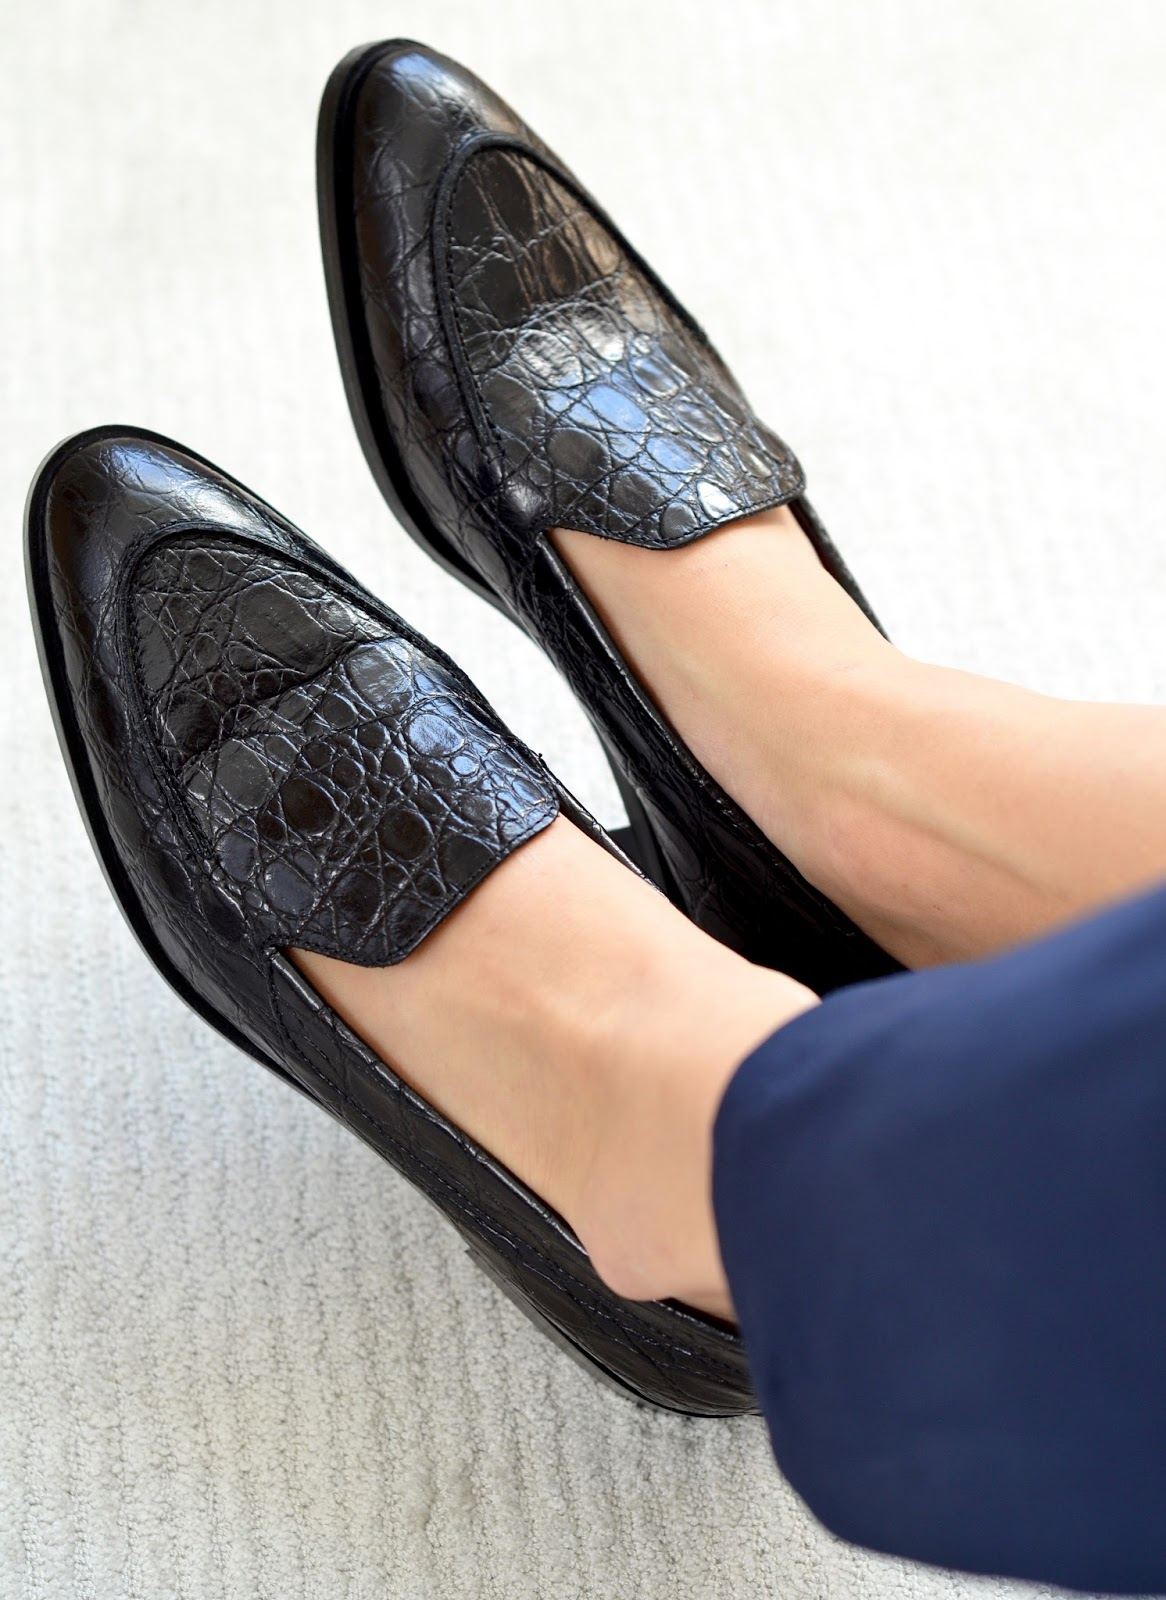 f51b5e68808 Everlane Modern Croc Loafer Photos Review Sizing Fit Information